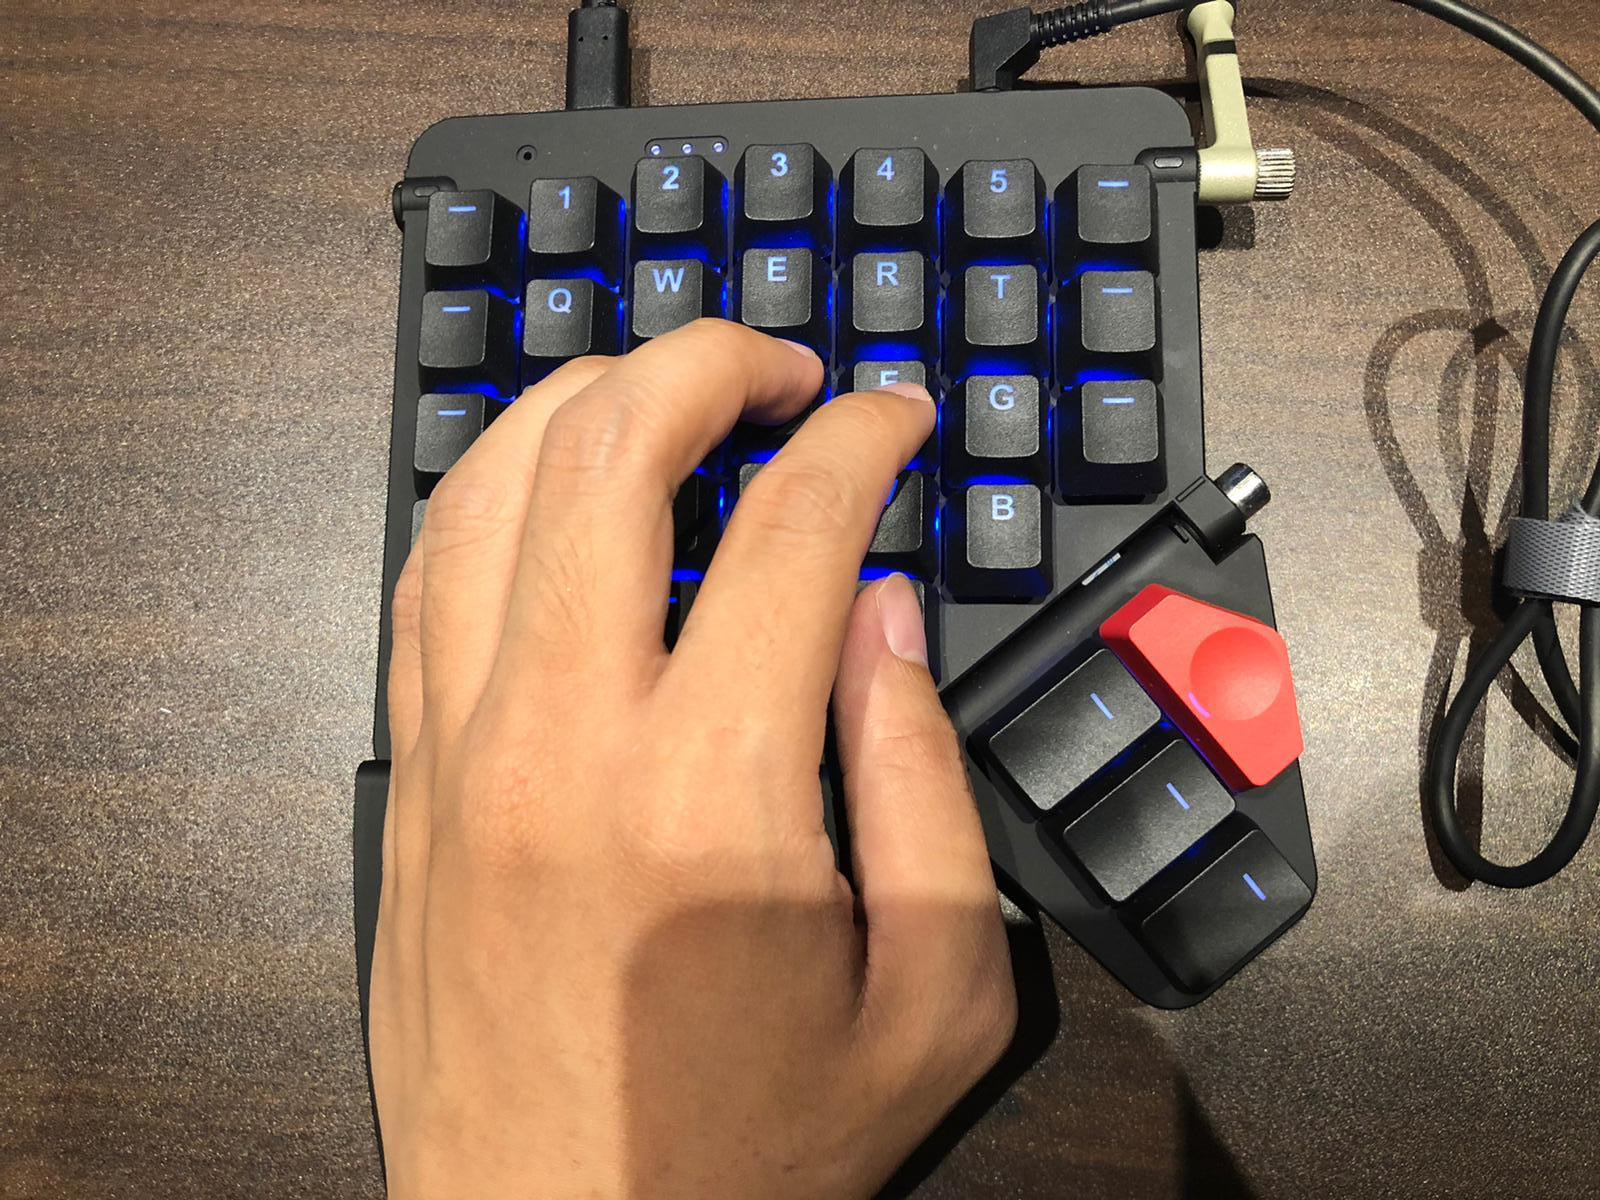 Hands placed on the command key.